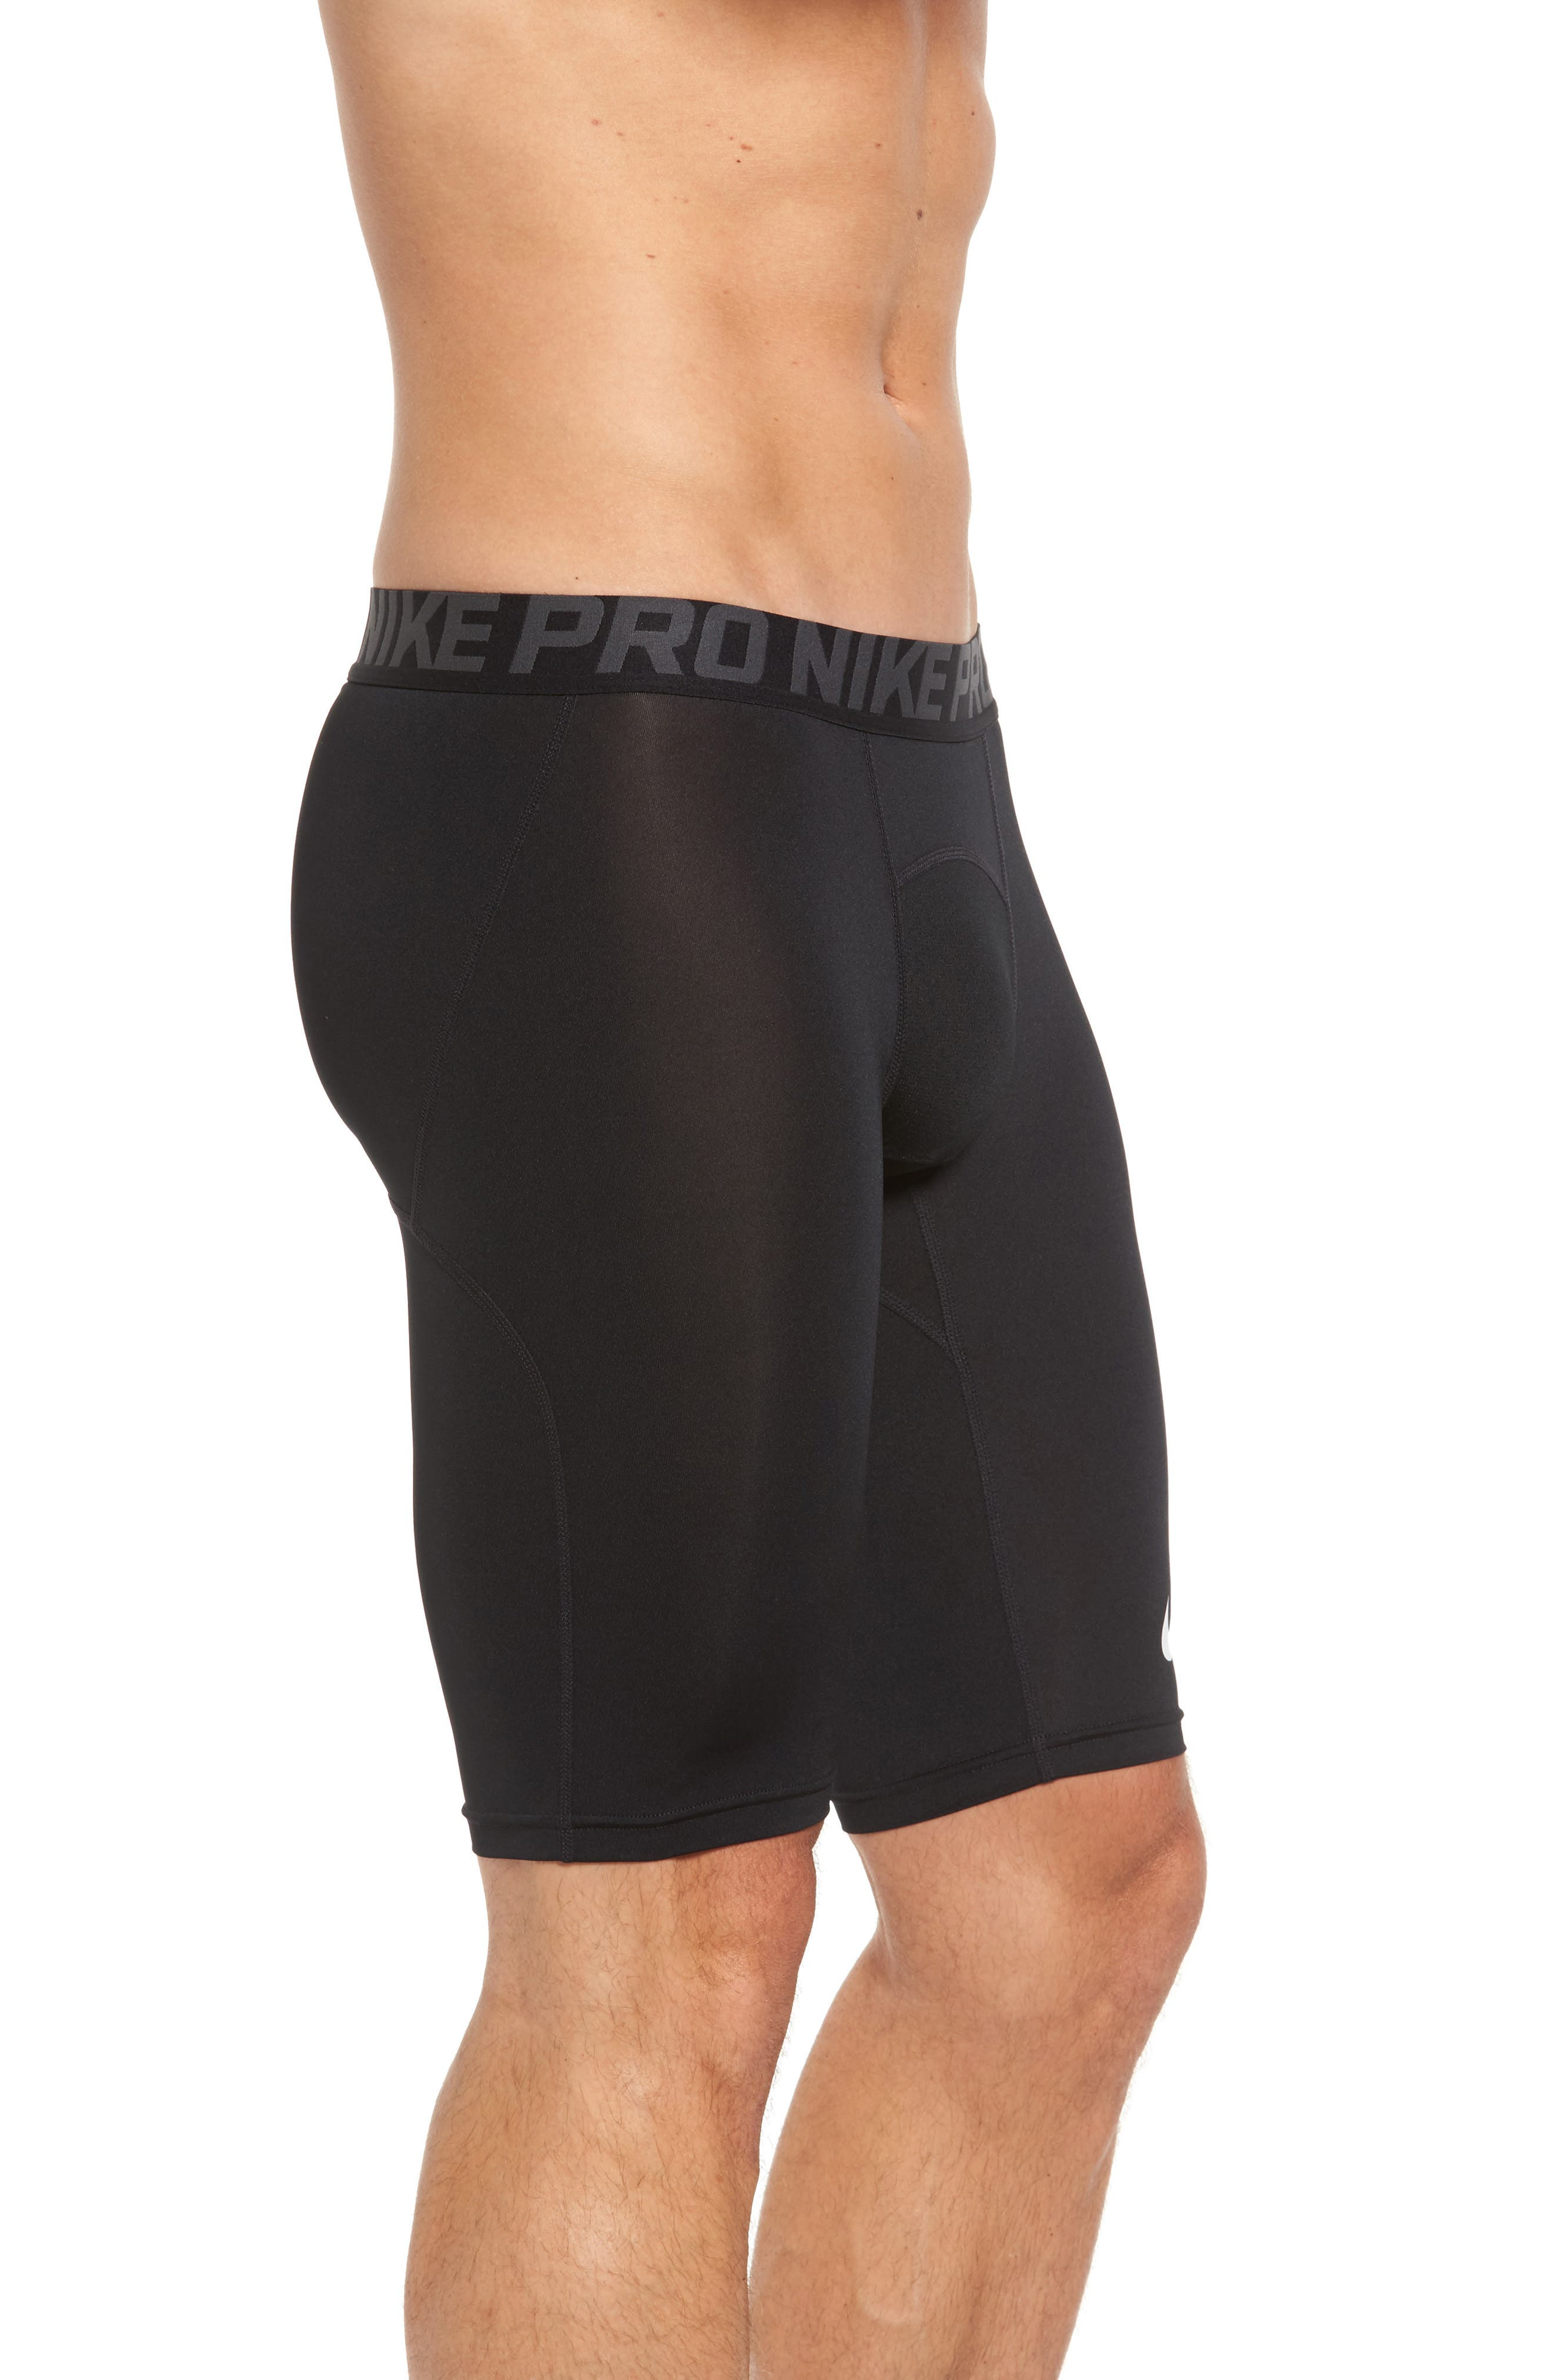 Pro Compression Shorts,                             Alternate thumbnail 3, color,                             Black/ Anthracite/ White